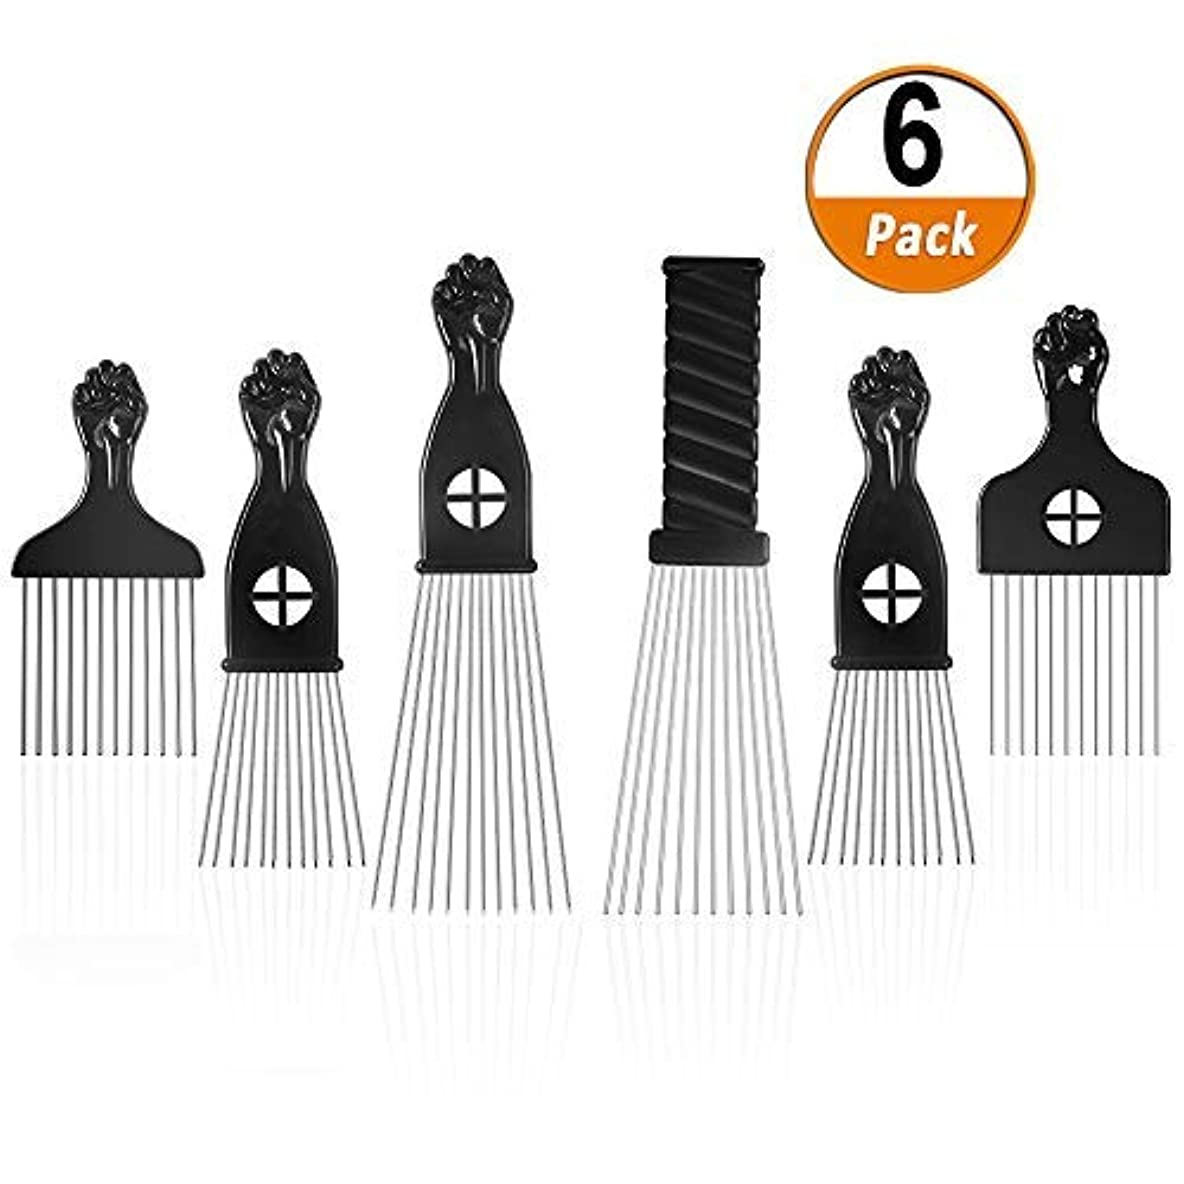 Afro Pick 6 Pack Metal African American Afro Hair Comb Hairdressing Styling Tool Hair Pick with Black Fist [並行輸入品]